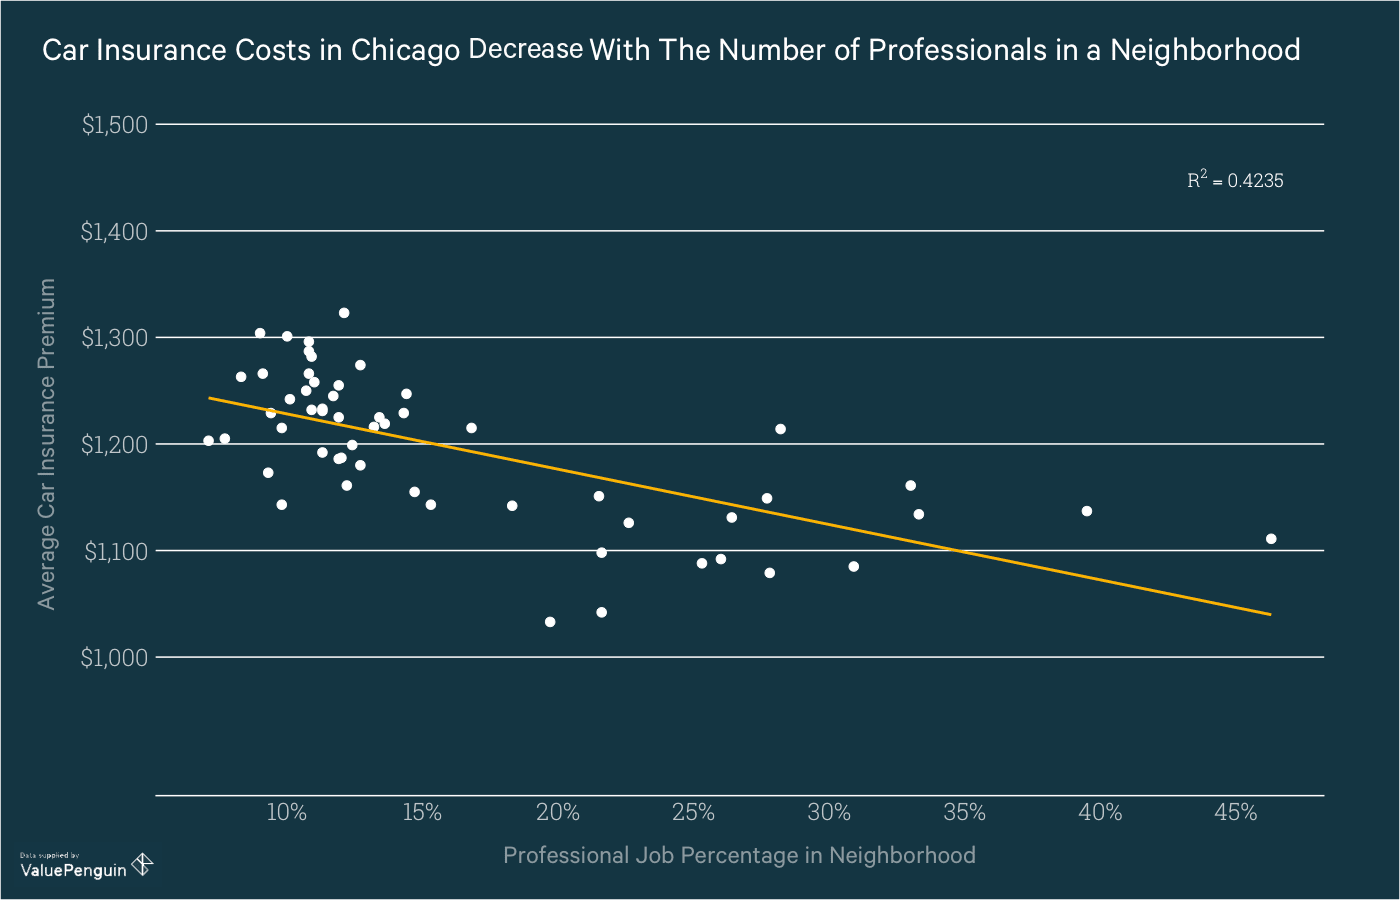 Graph shows the correlation between profession and car insurance cost in Chicago